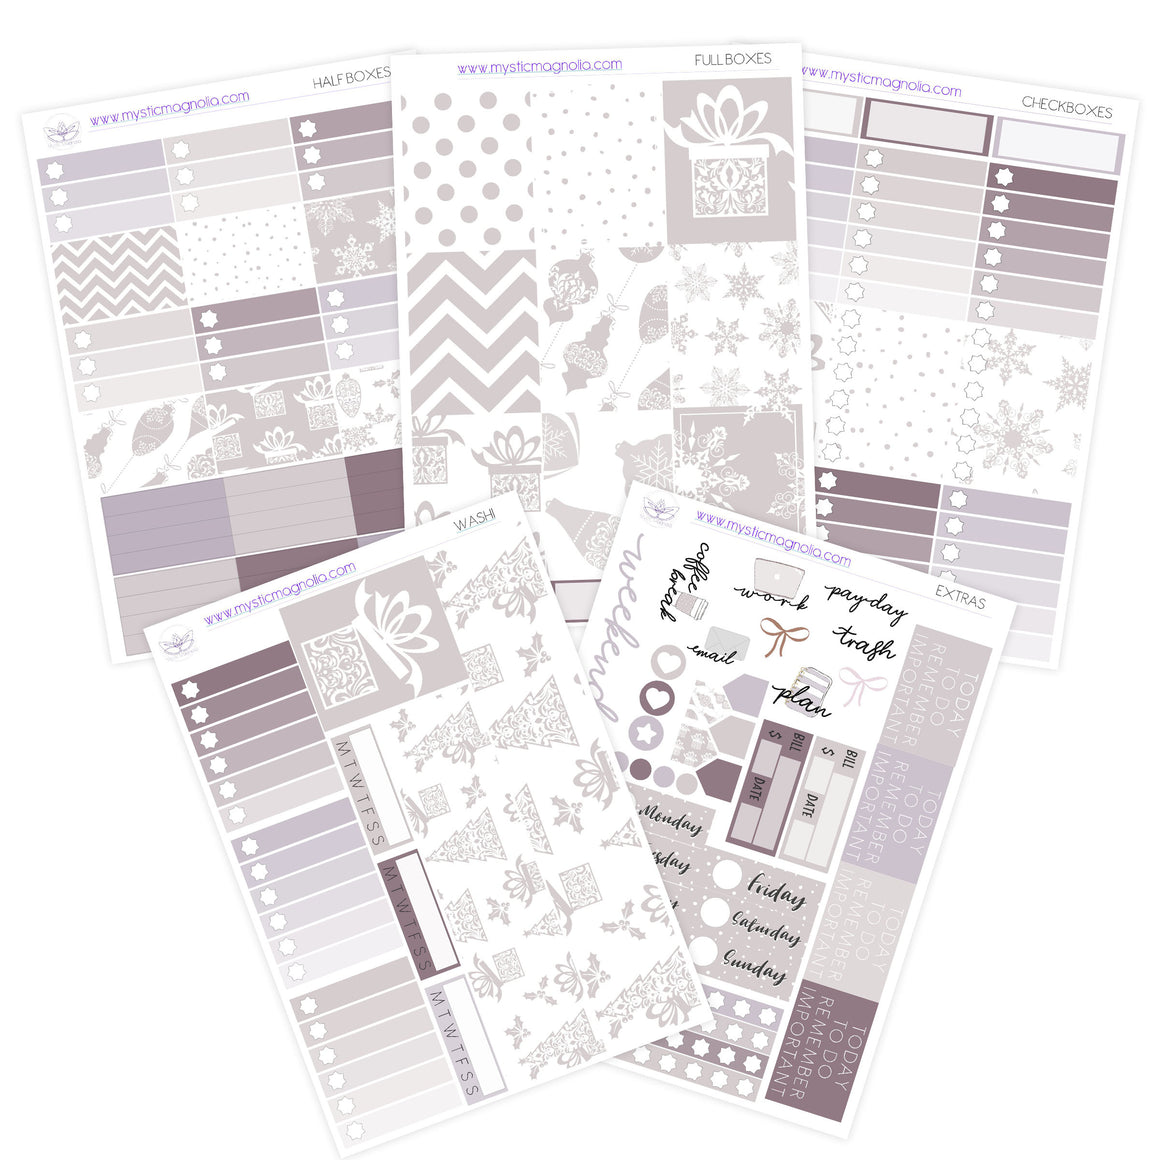 Dreamy Christmas Planner Sticker Kit